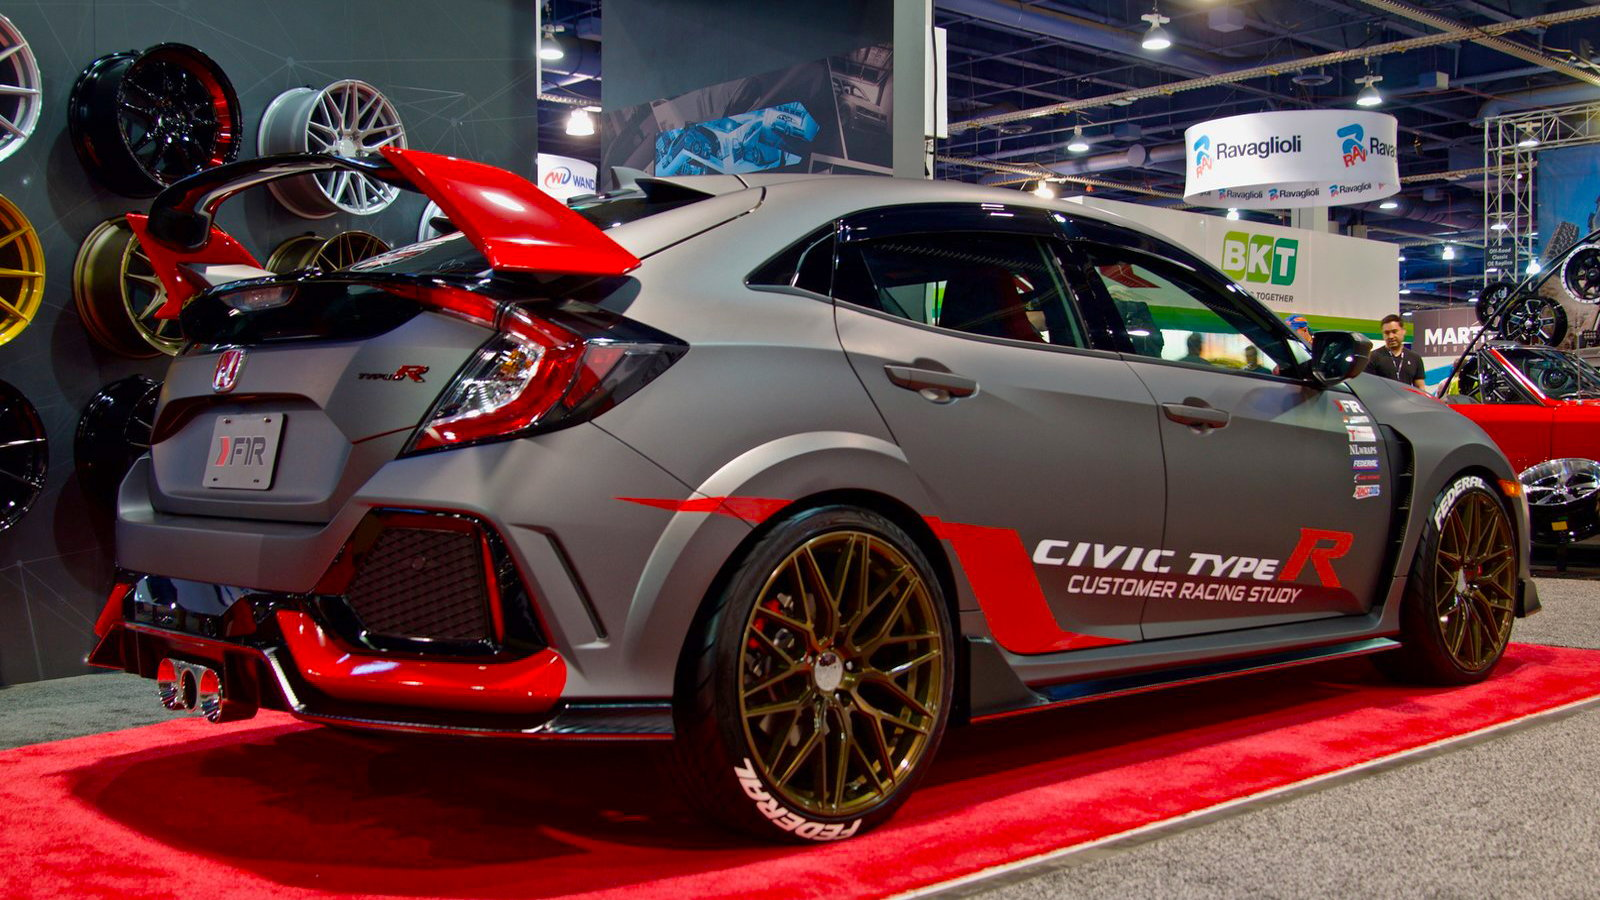 Civic Type R Engine Now Available as a Crate Motor